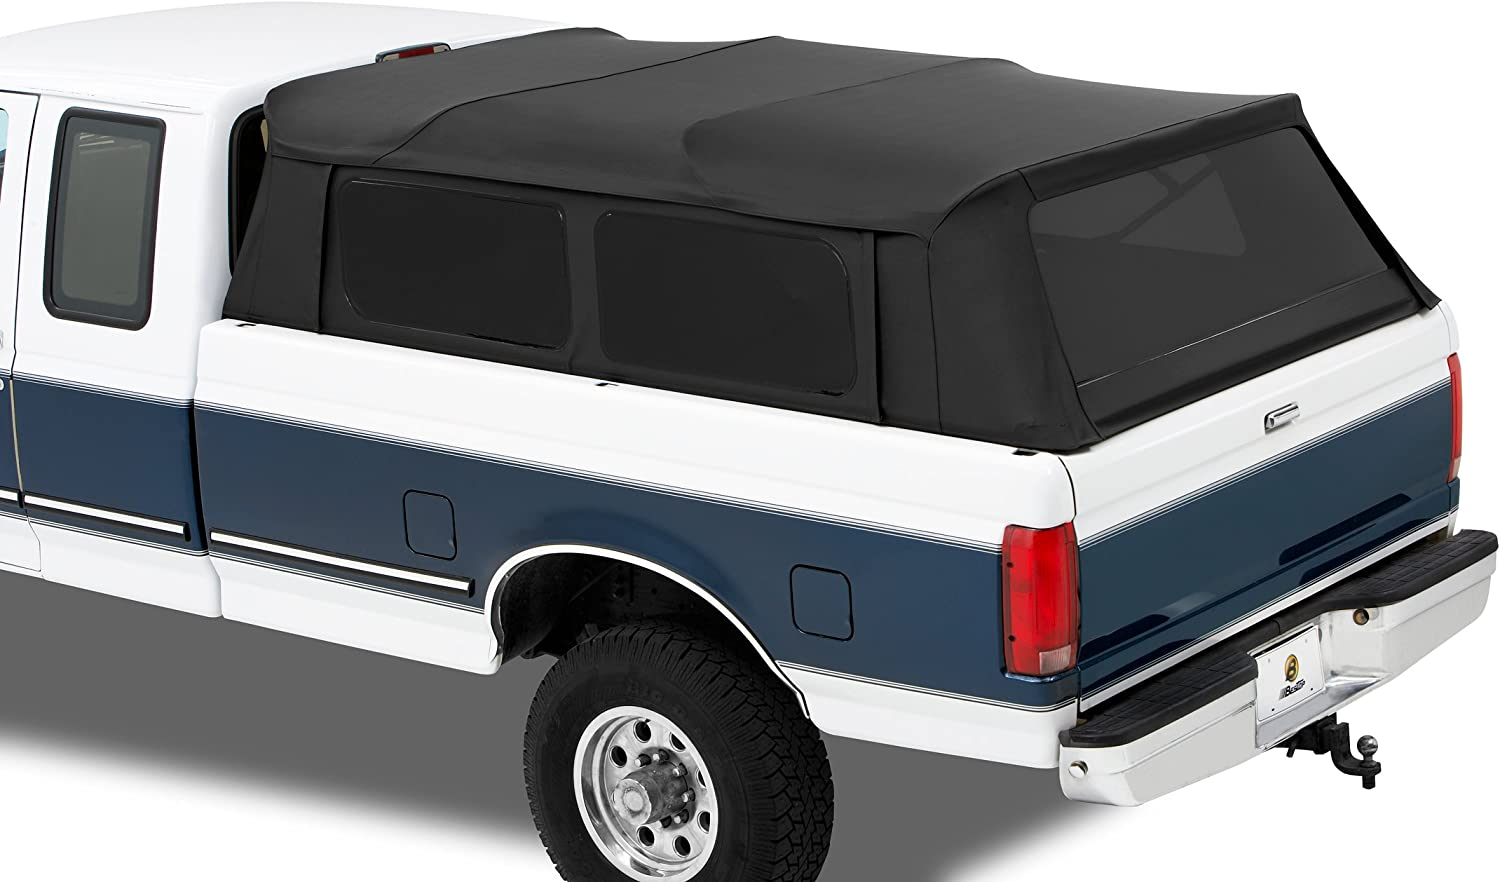 6.0 Bed Bestop/® 76302-35 Black Diamond Supertop/® for Truck Bed Cover for 1994-2012 Chevy//GMC S-Series//Colorado//Canyon; Ford Ranger; Mazda B-Series